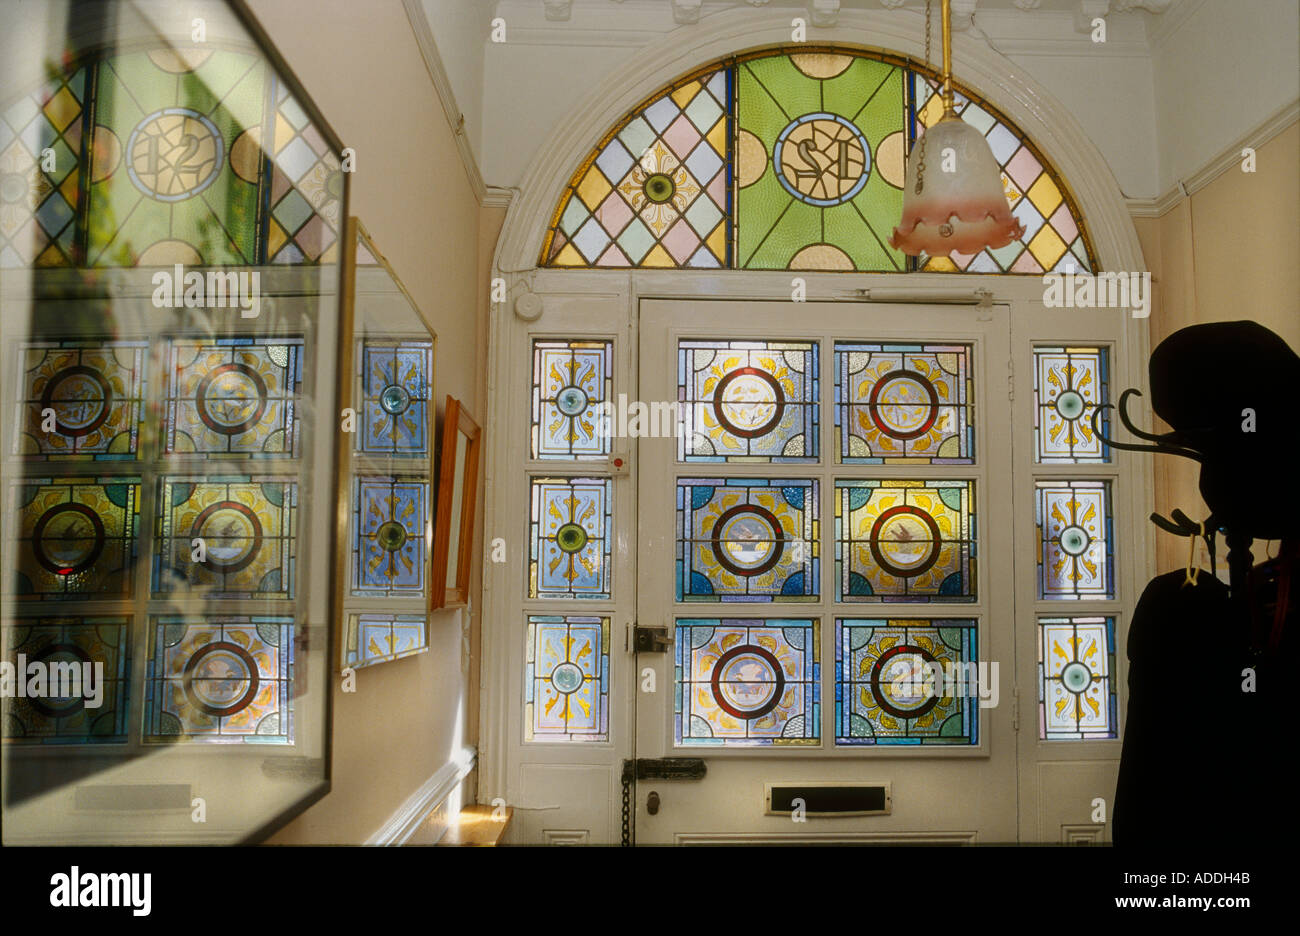 Stained glass interior doors - Decorative Victorian Stained Glass Front Door Taken From Interior Looking Out British Housing London